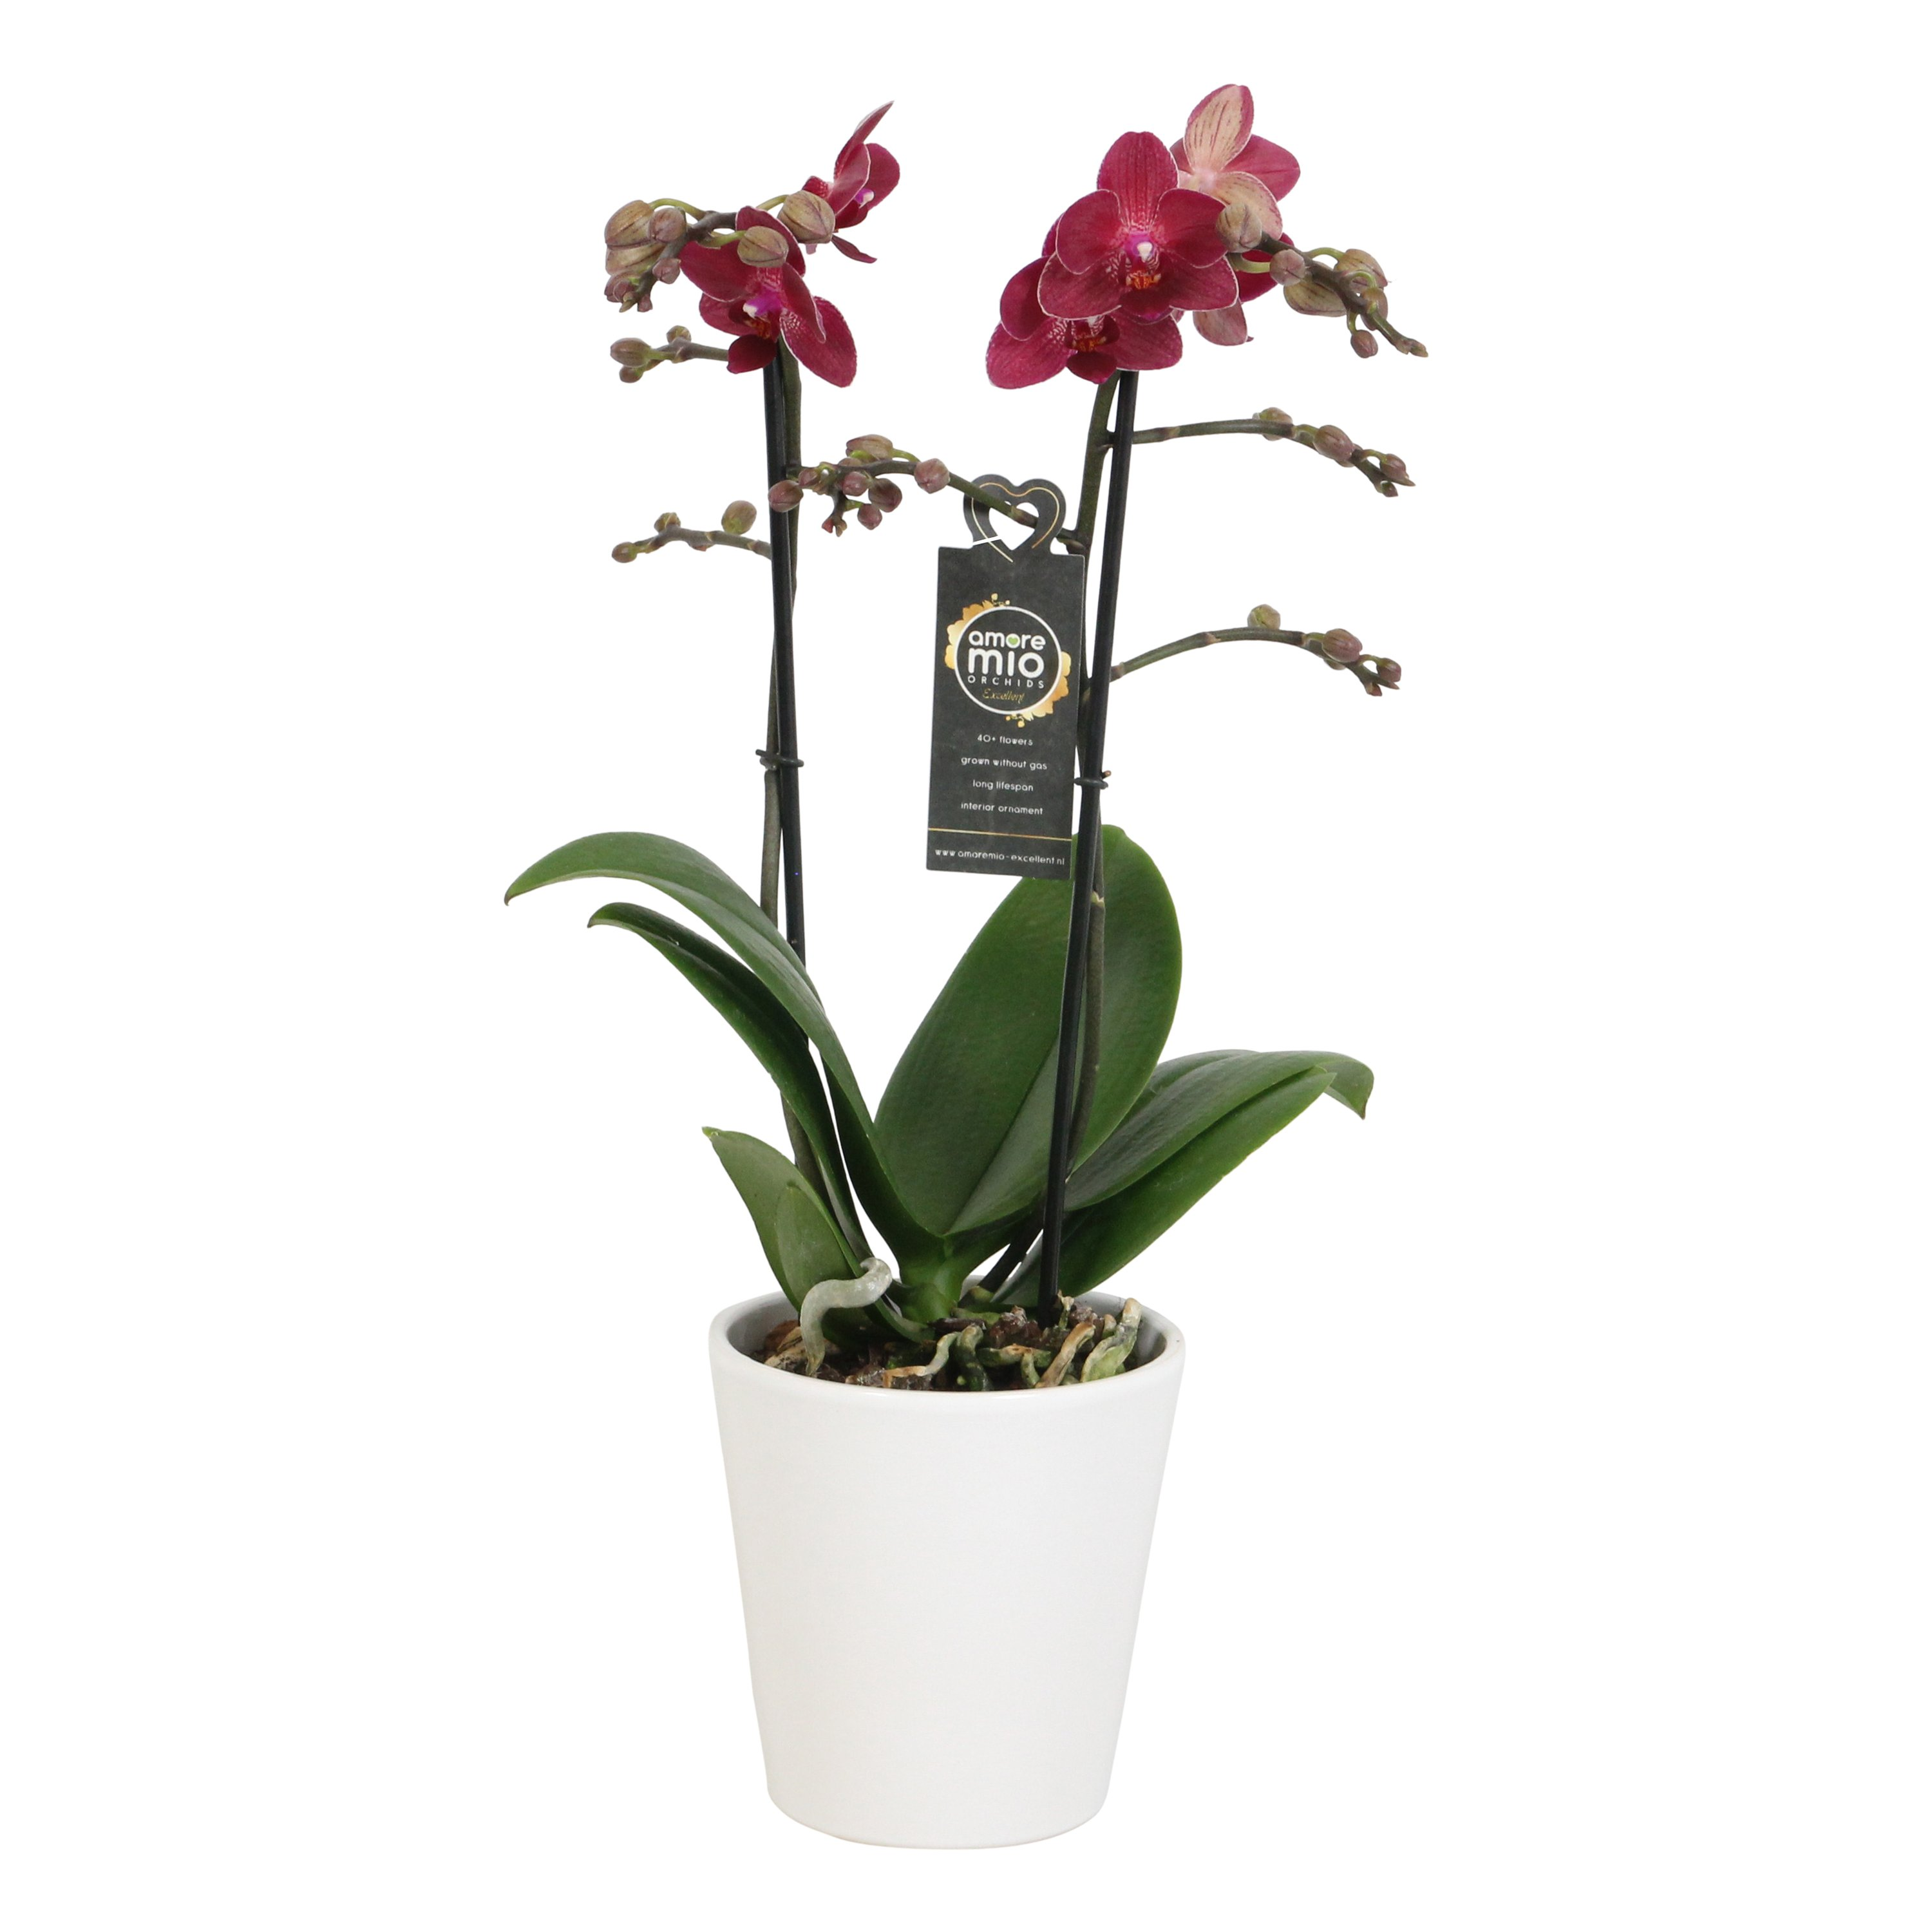 Orchid – Butterfly orchid in ribbed white ceramic pot as a set – Height: 45 cm, 2 stems, red flowers